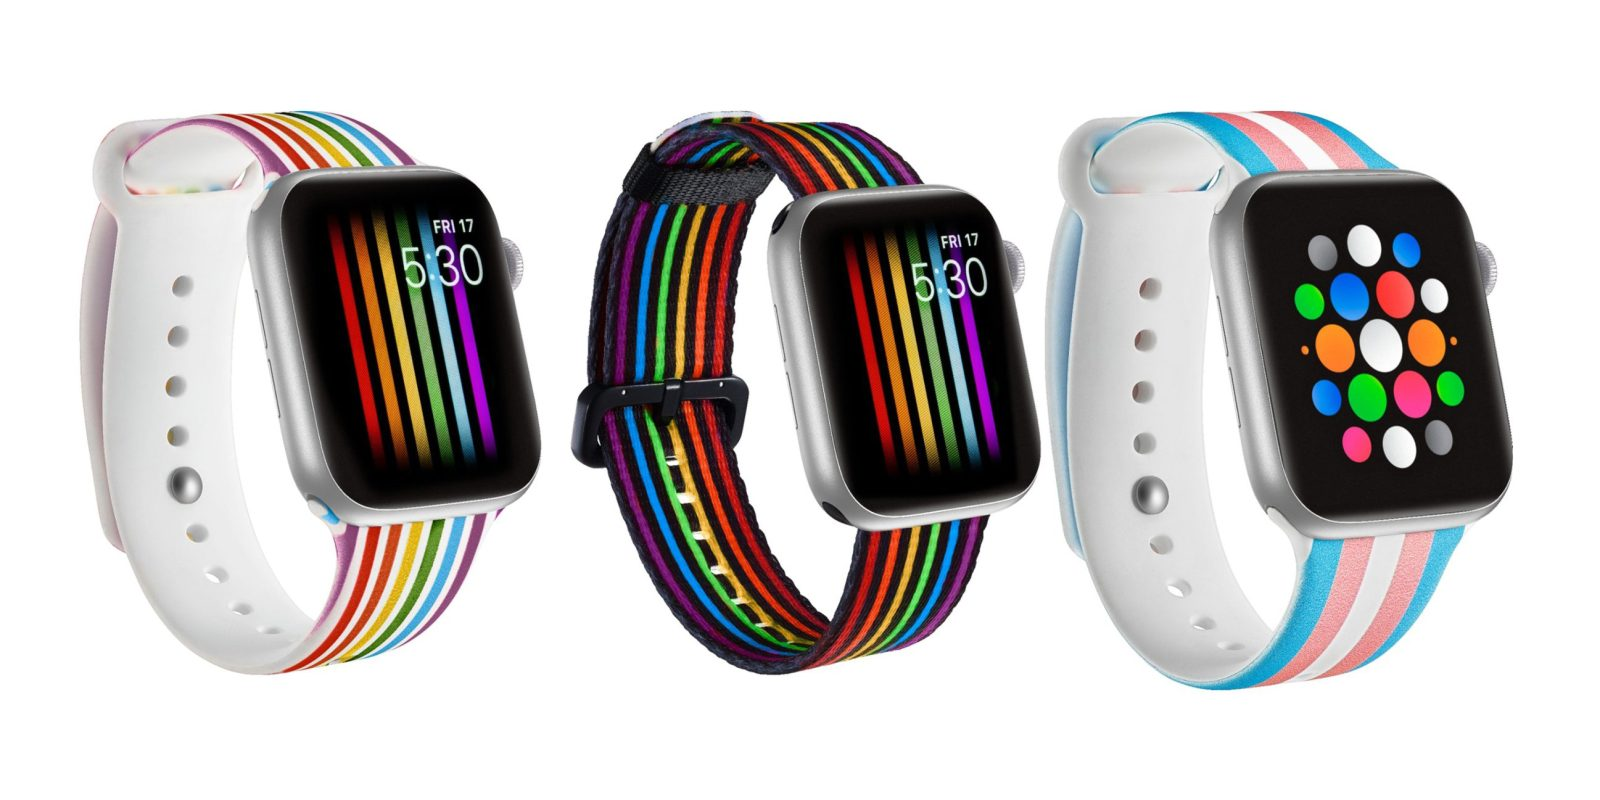 Modal Apple Watch Pride Bands hit $10 in a variety of styles, today only